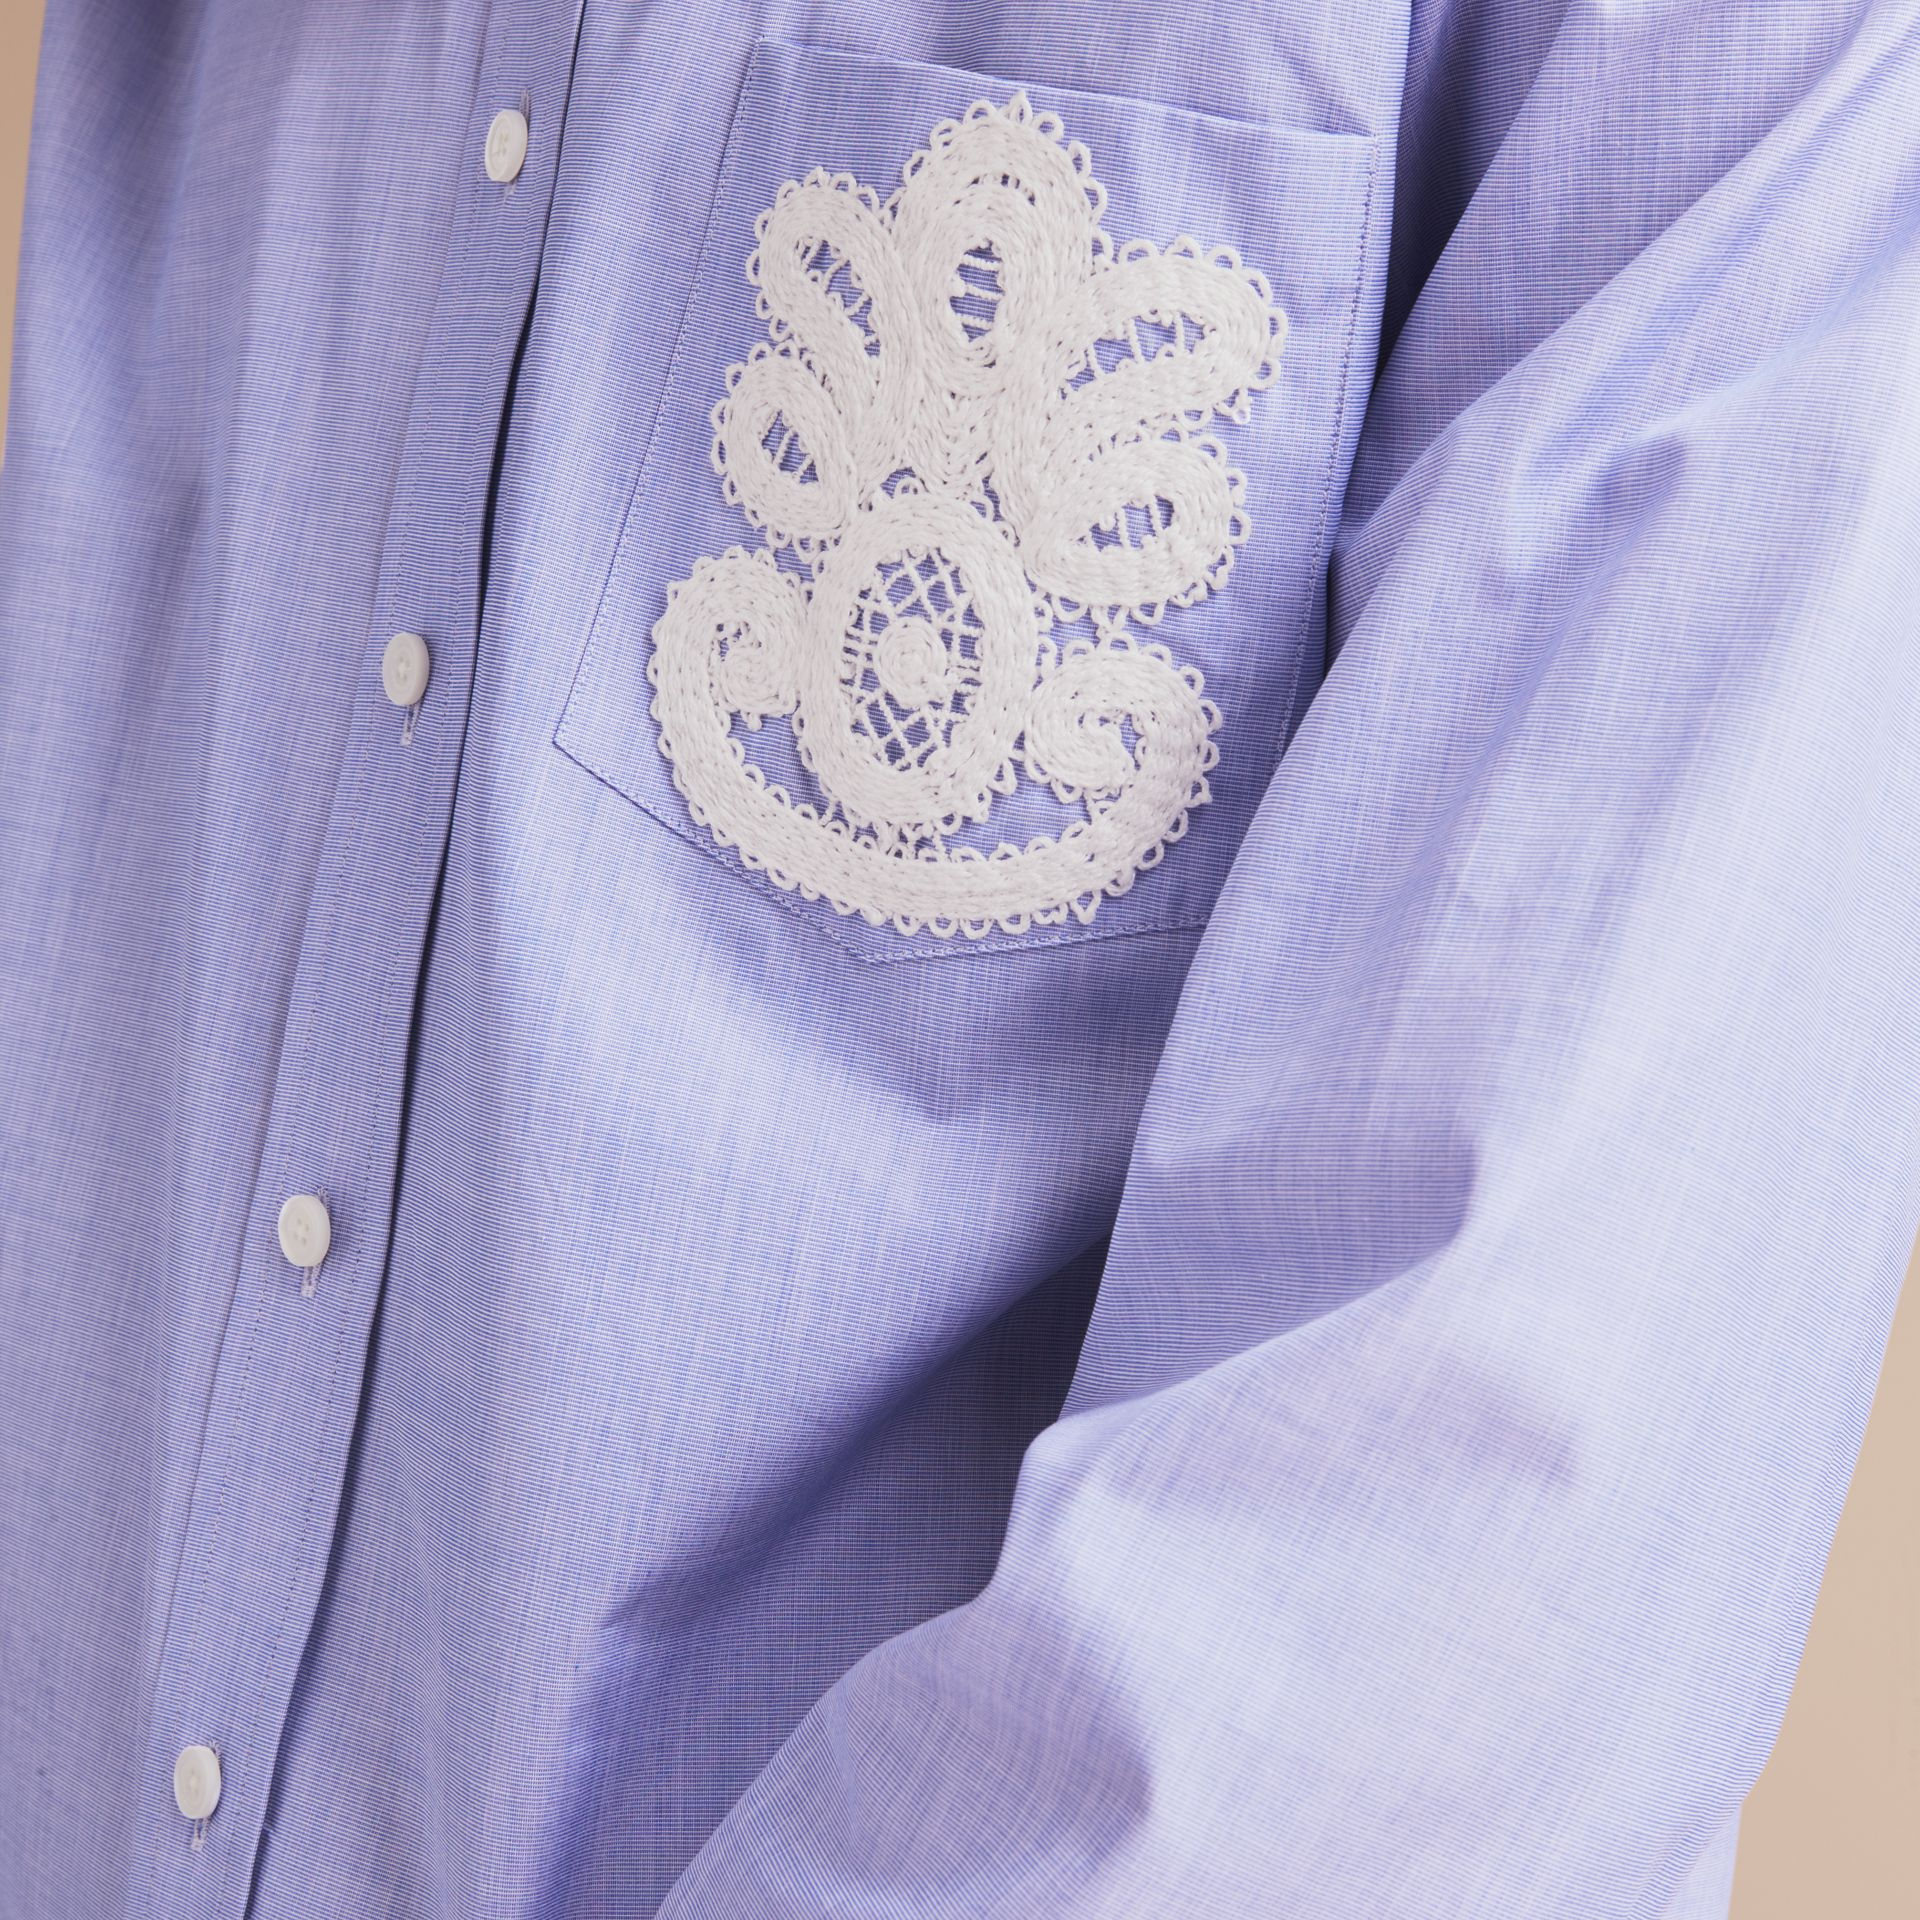 Lace Appliqué Cotton Shirt in Mid Indigo - Men | Burberry - gallery image 5